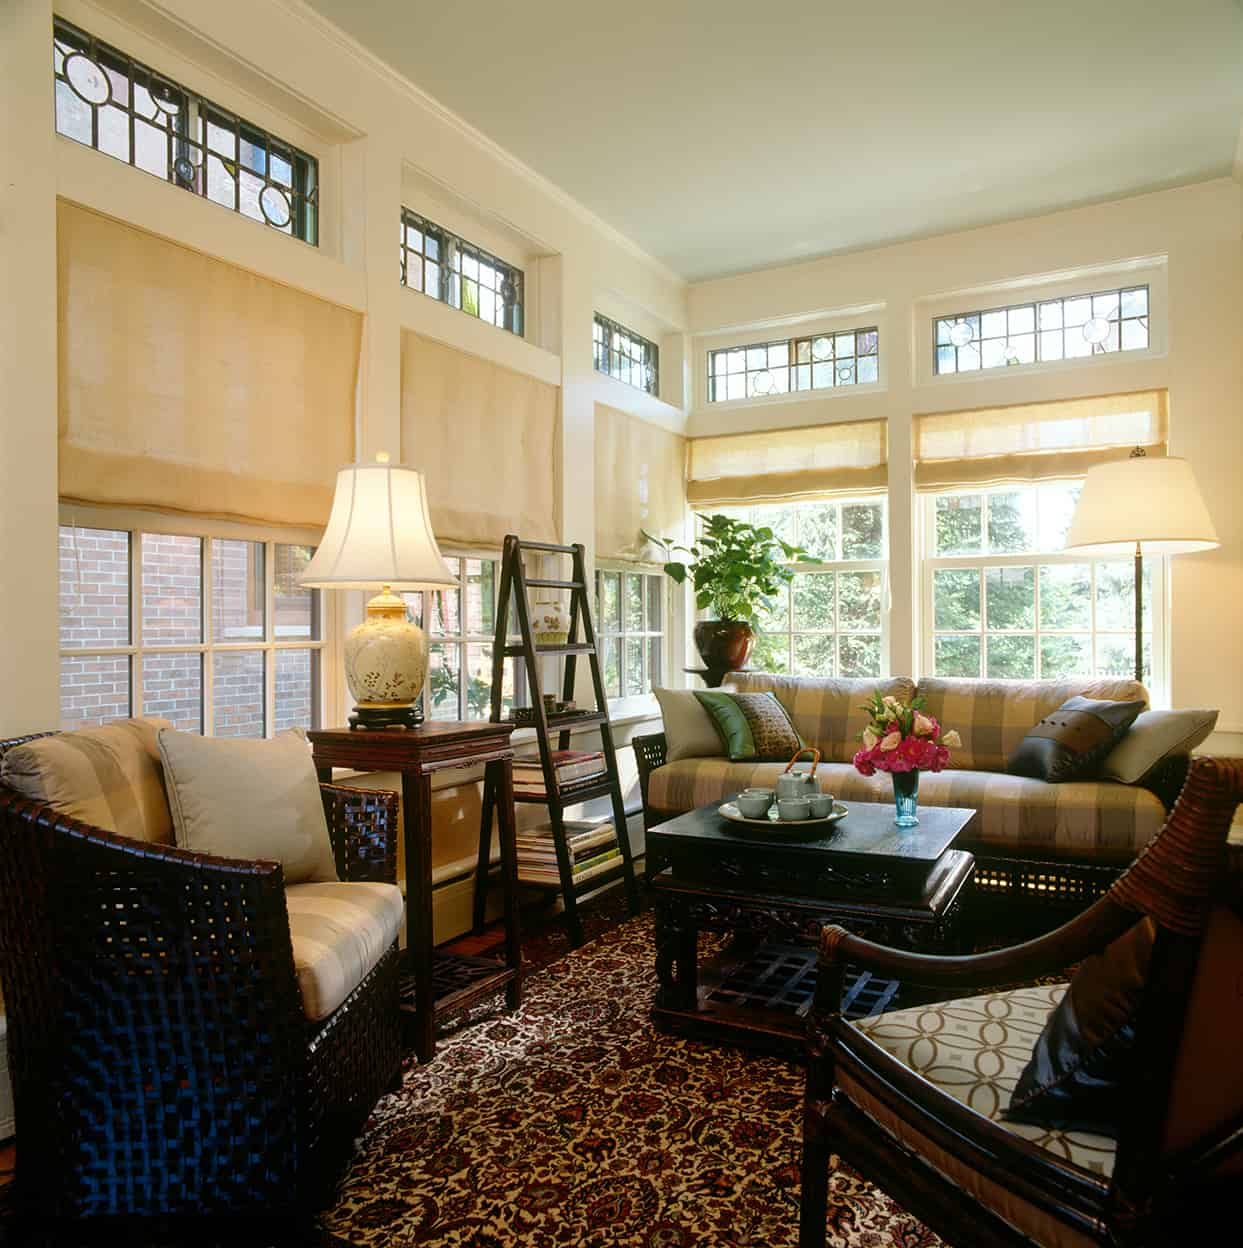 The sunroom has more of that delightful colored art glass above the generous windows and comfortable furniture. A wonderful place to soak up the sun on a winter's afternoon.